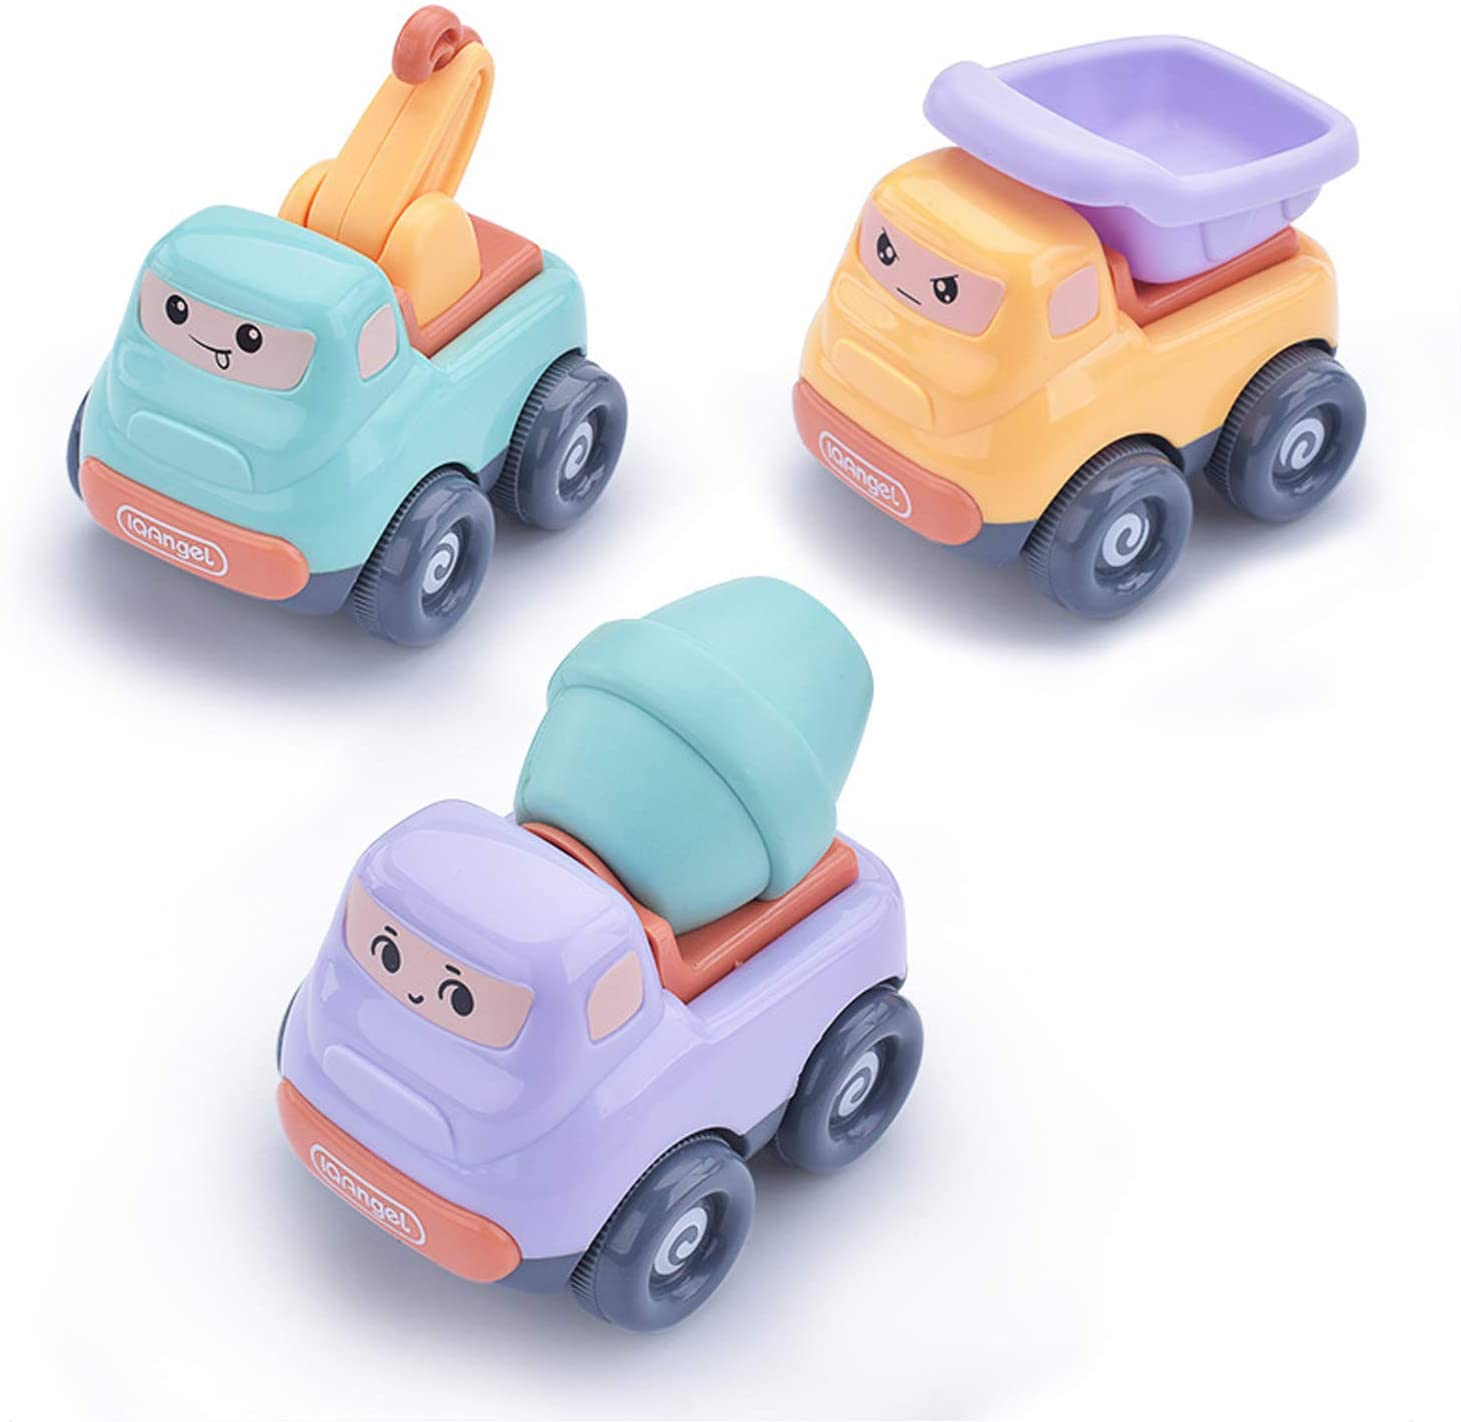 Beville Cute Inertia Friction Powered Push and Go Cars for Toddler Boys & Girls,Set of 3 Pack Kids Early Educational Engineering Vehicles Includes Small Crane, Dump Truck, Mixer Truck.(Random Colors)